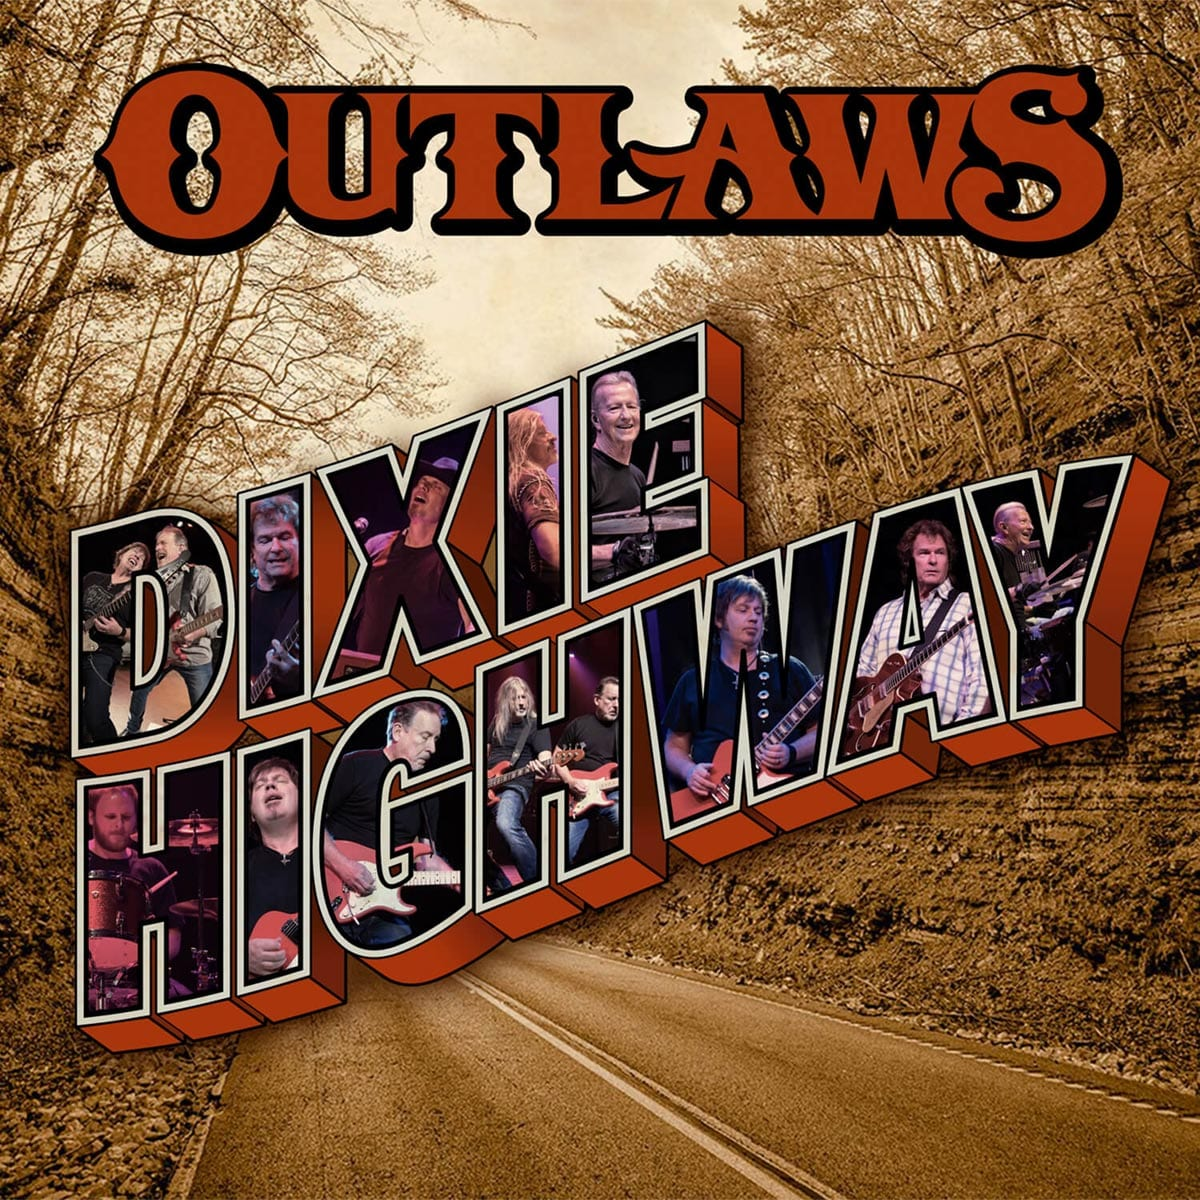 The Outlaws Dixie Highway album cover